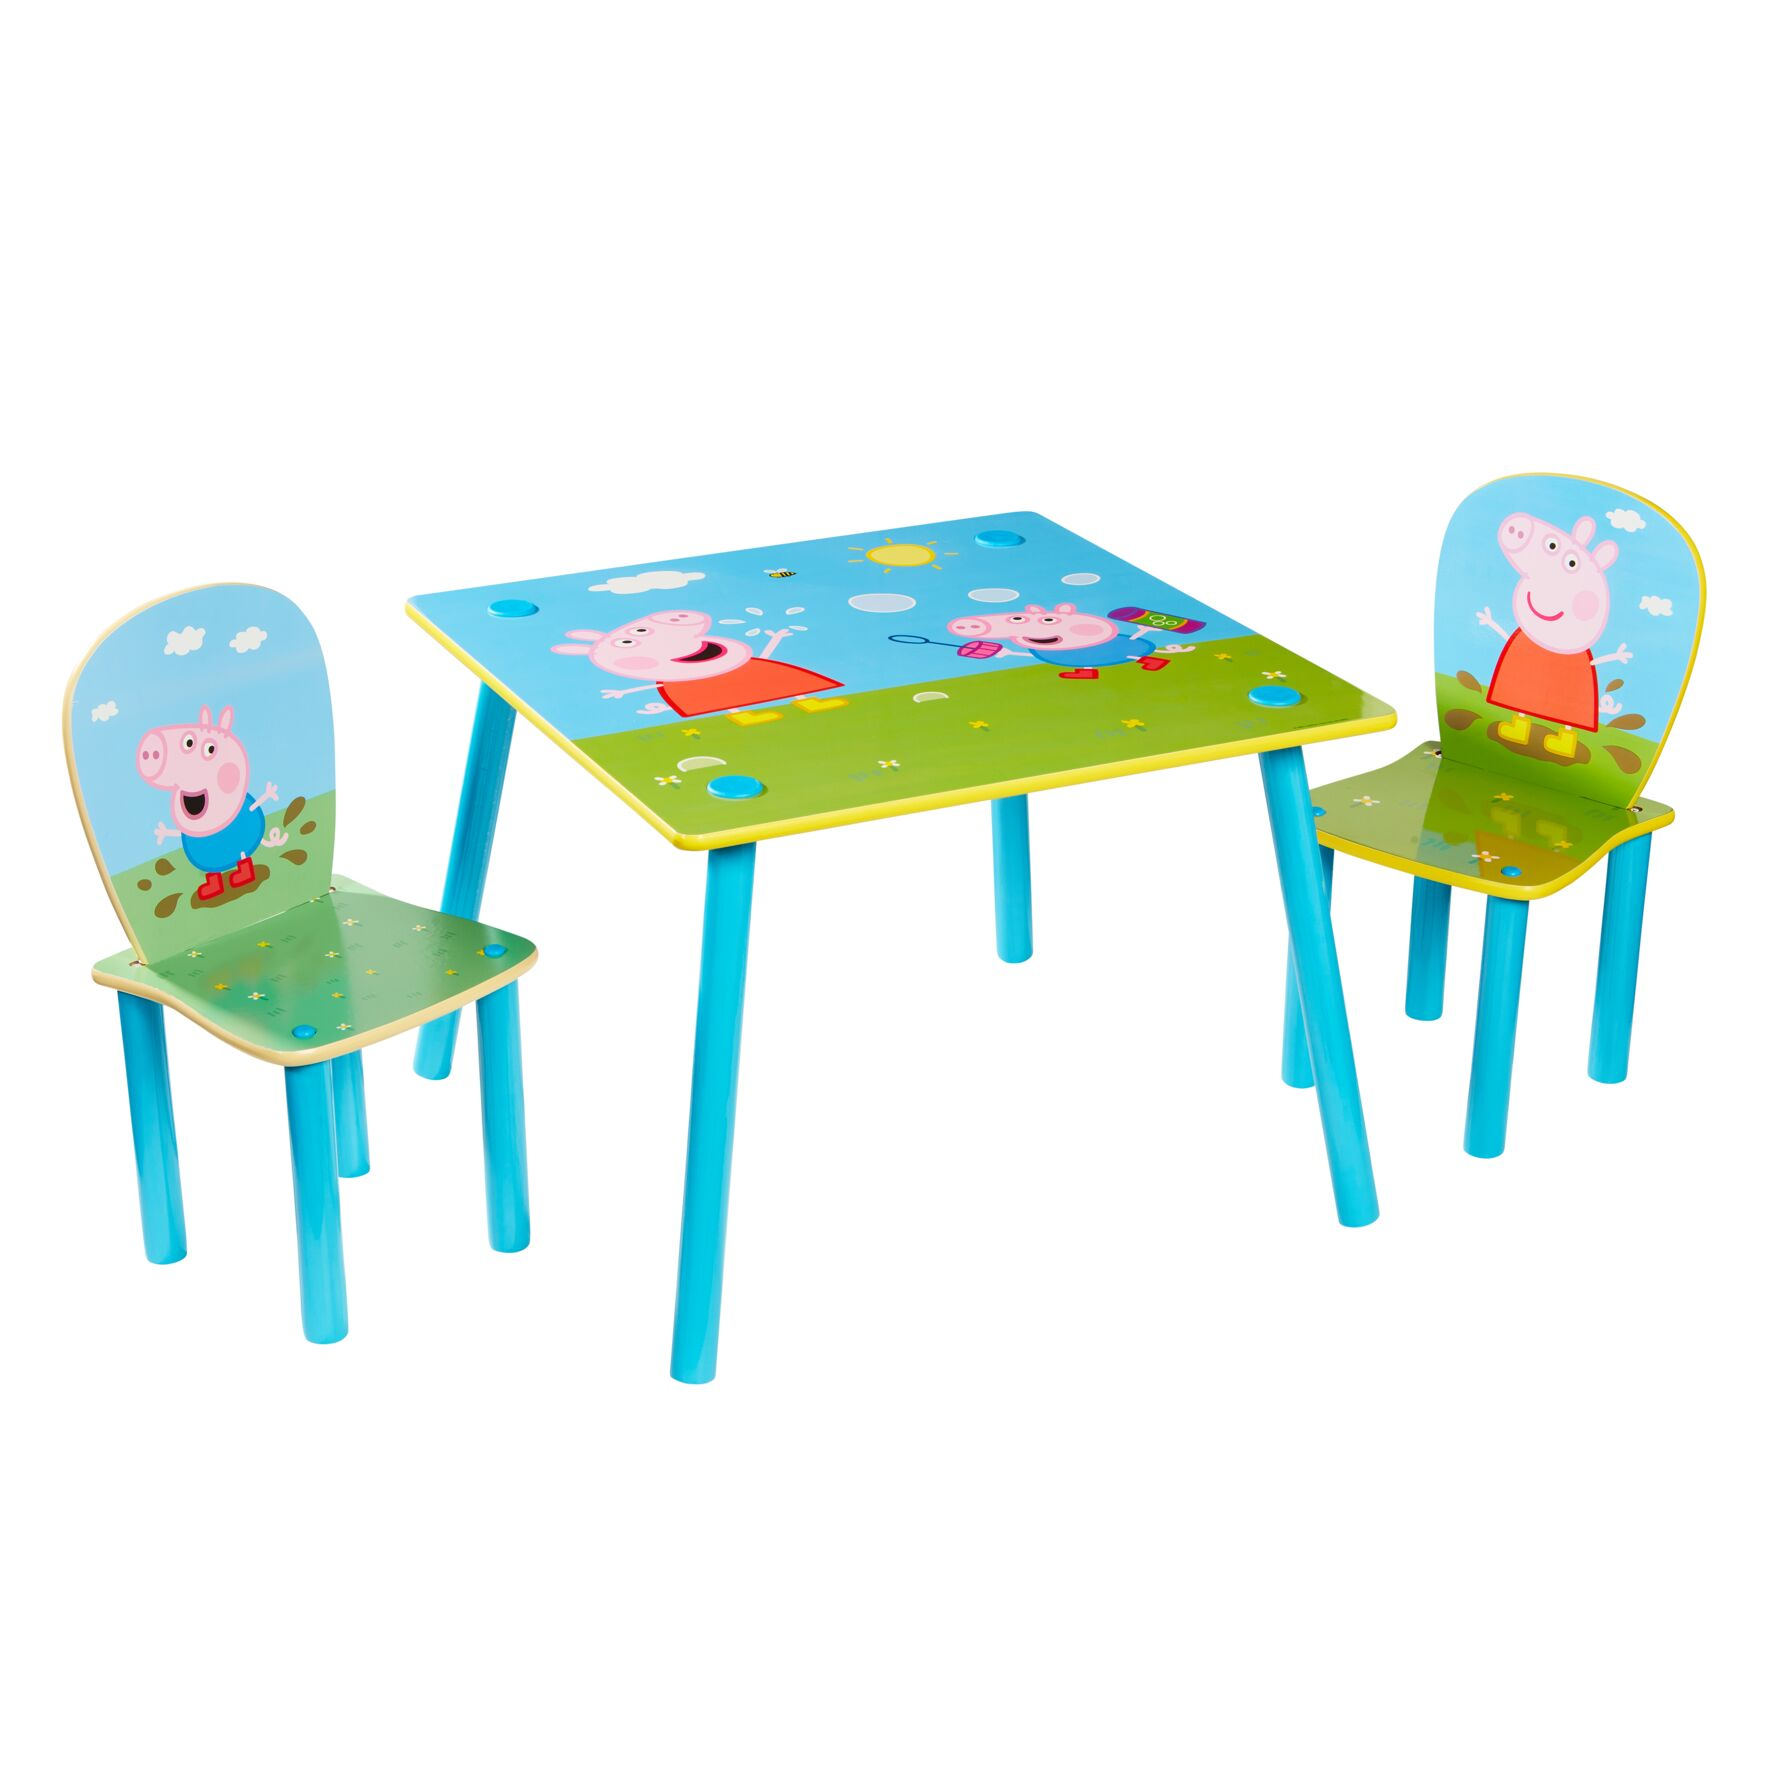 Peppa Pig - Kids Table and 2 Chairs Set (527PIG01E)